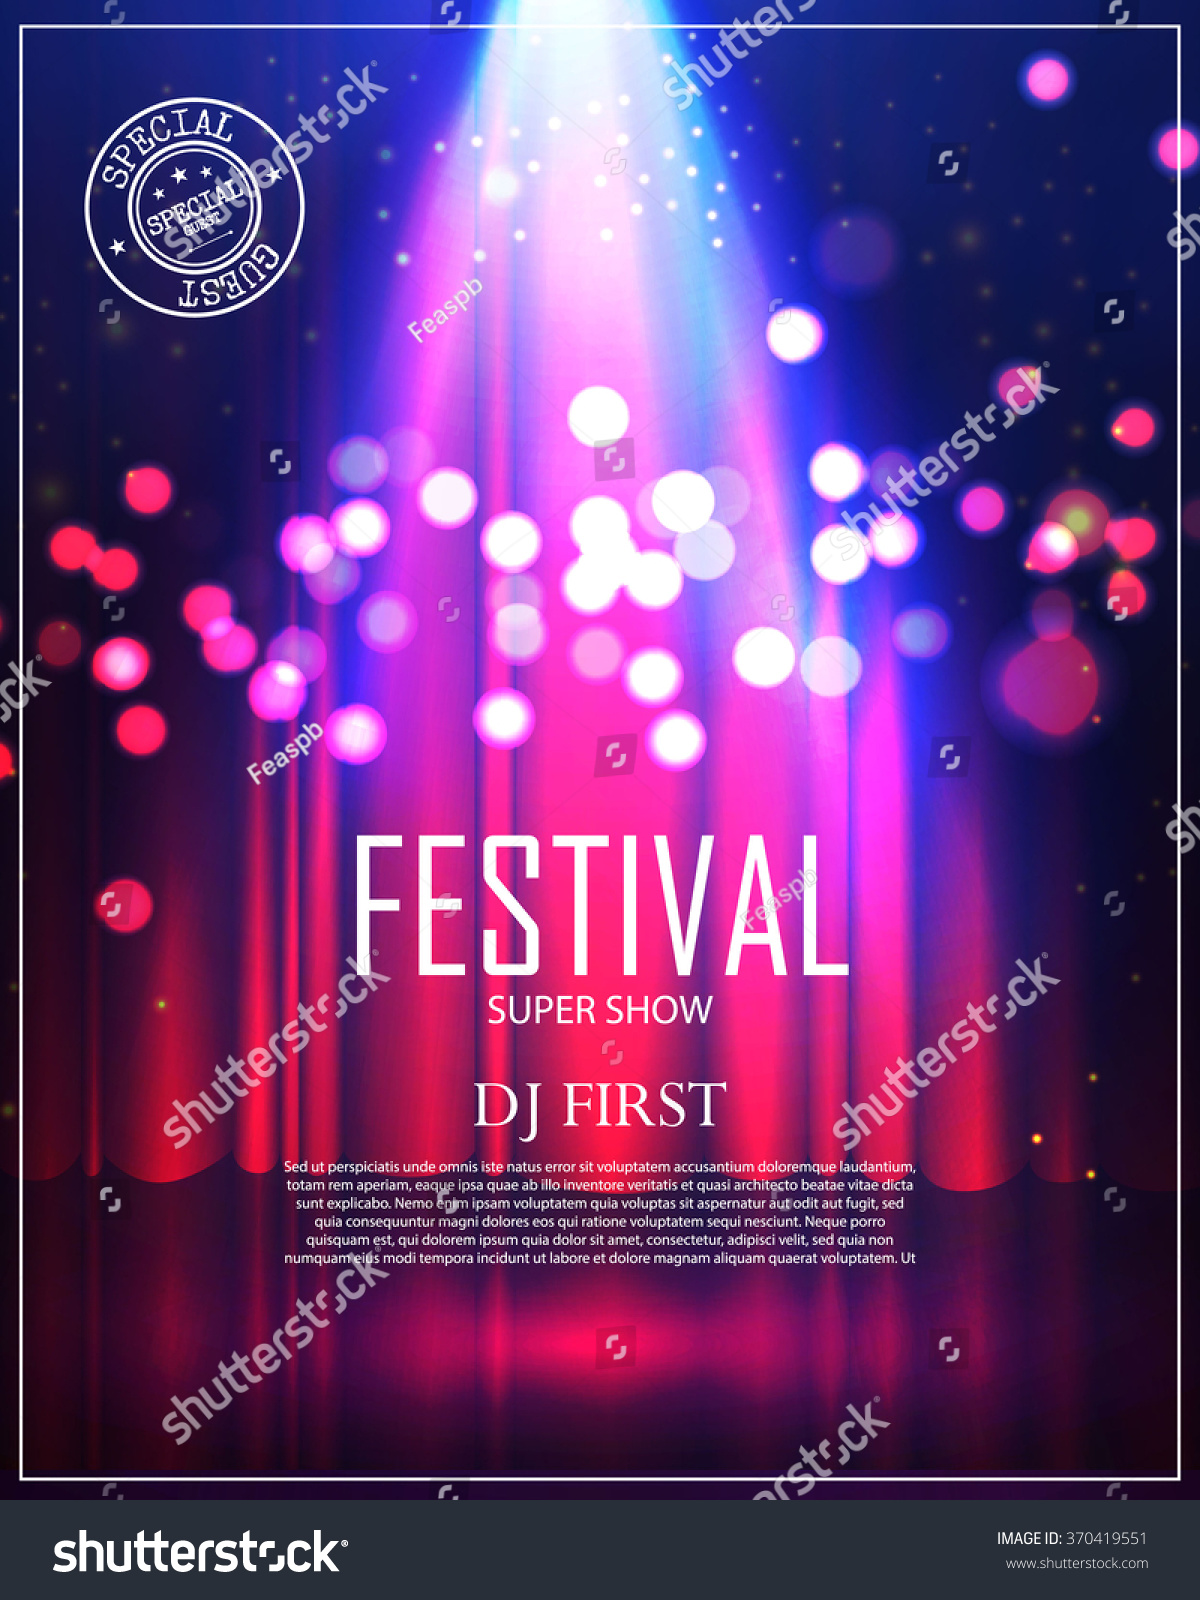 Festival Poster With Spotlight Concert Party Theater Dance Show Design